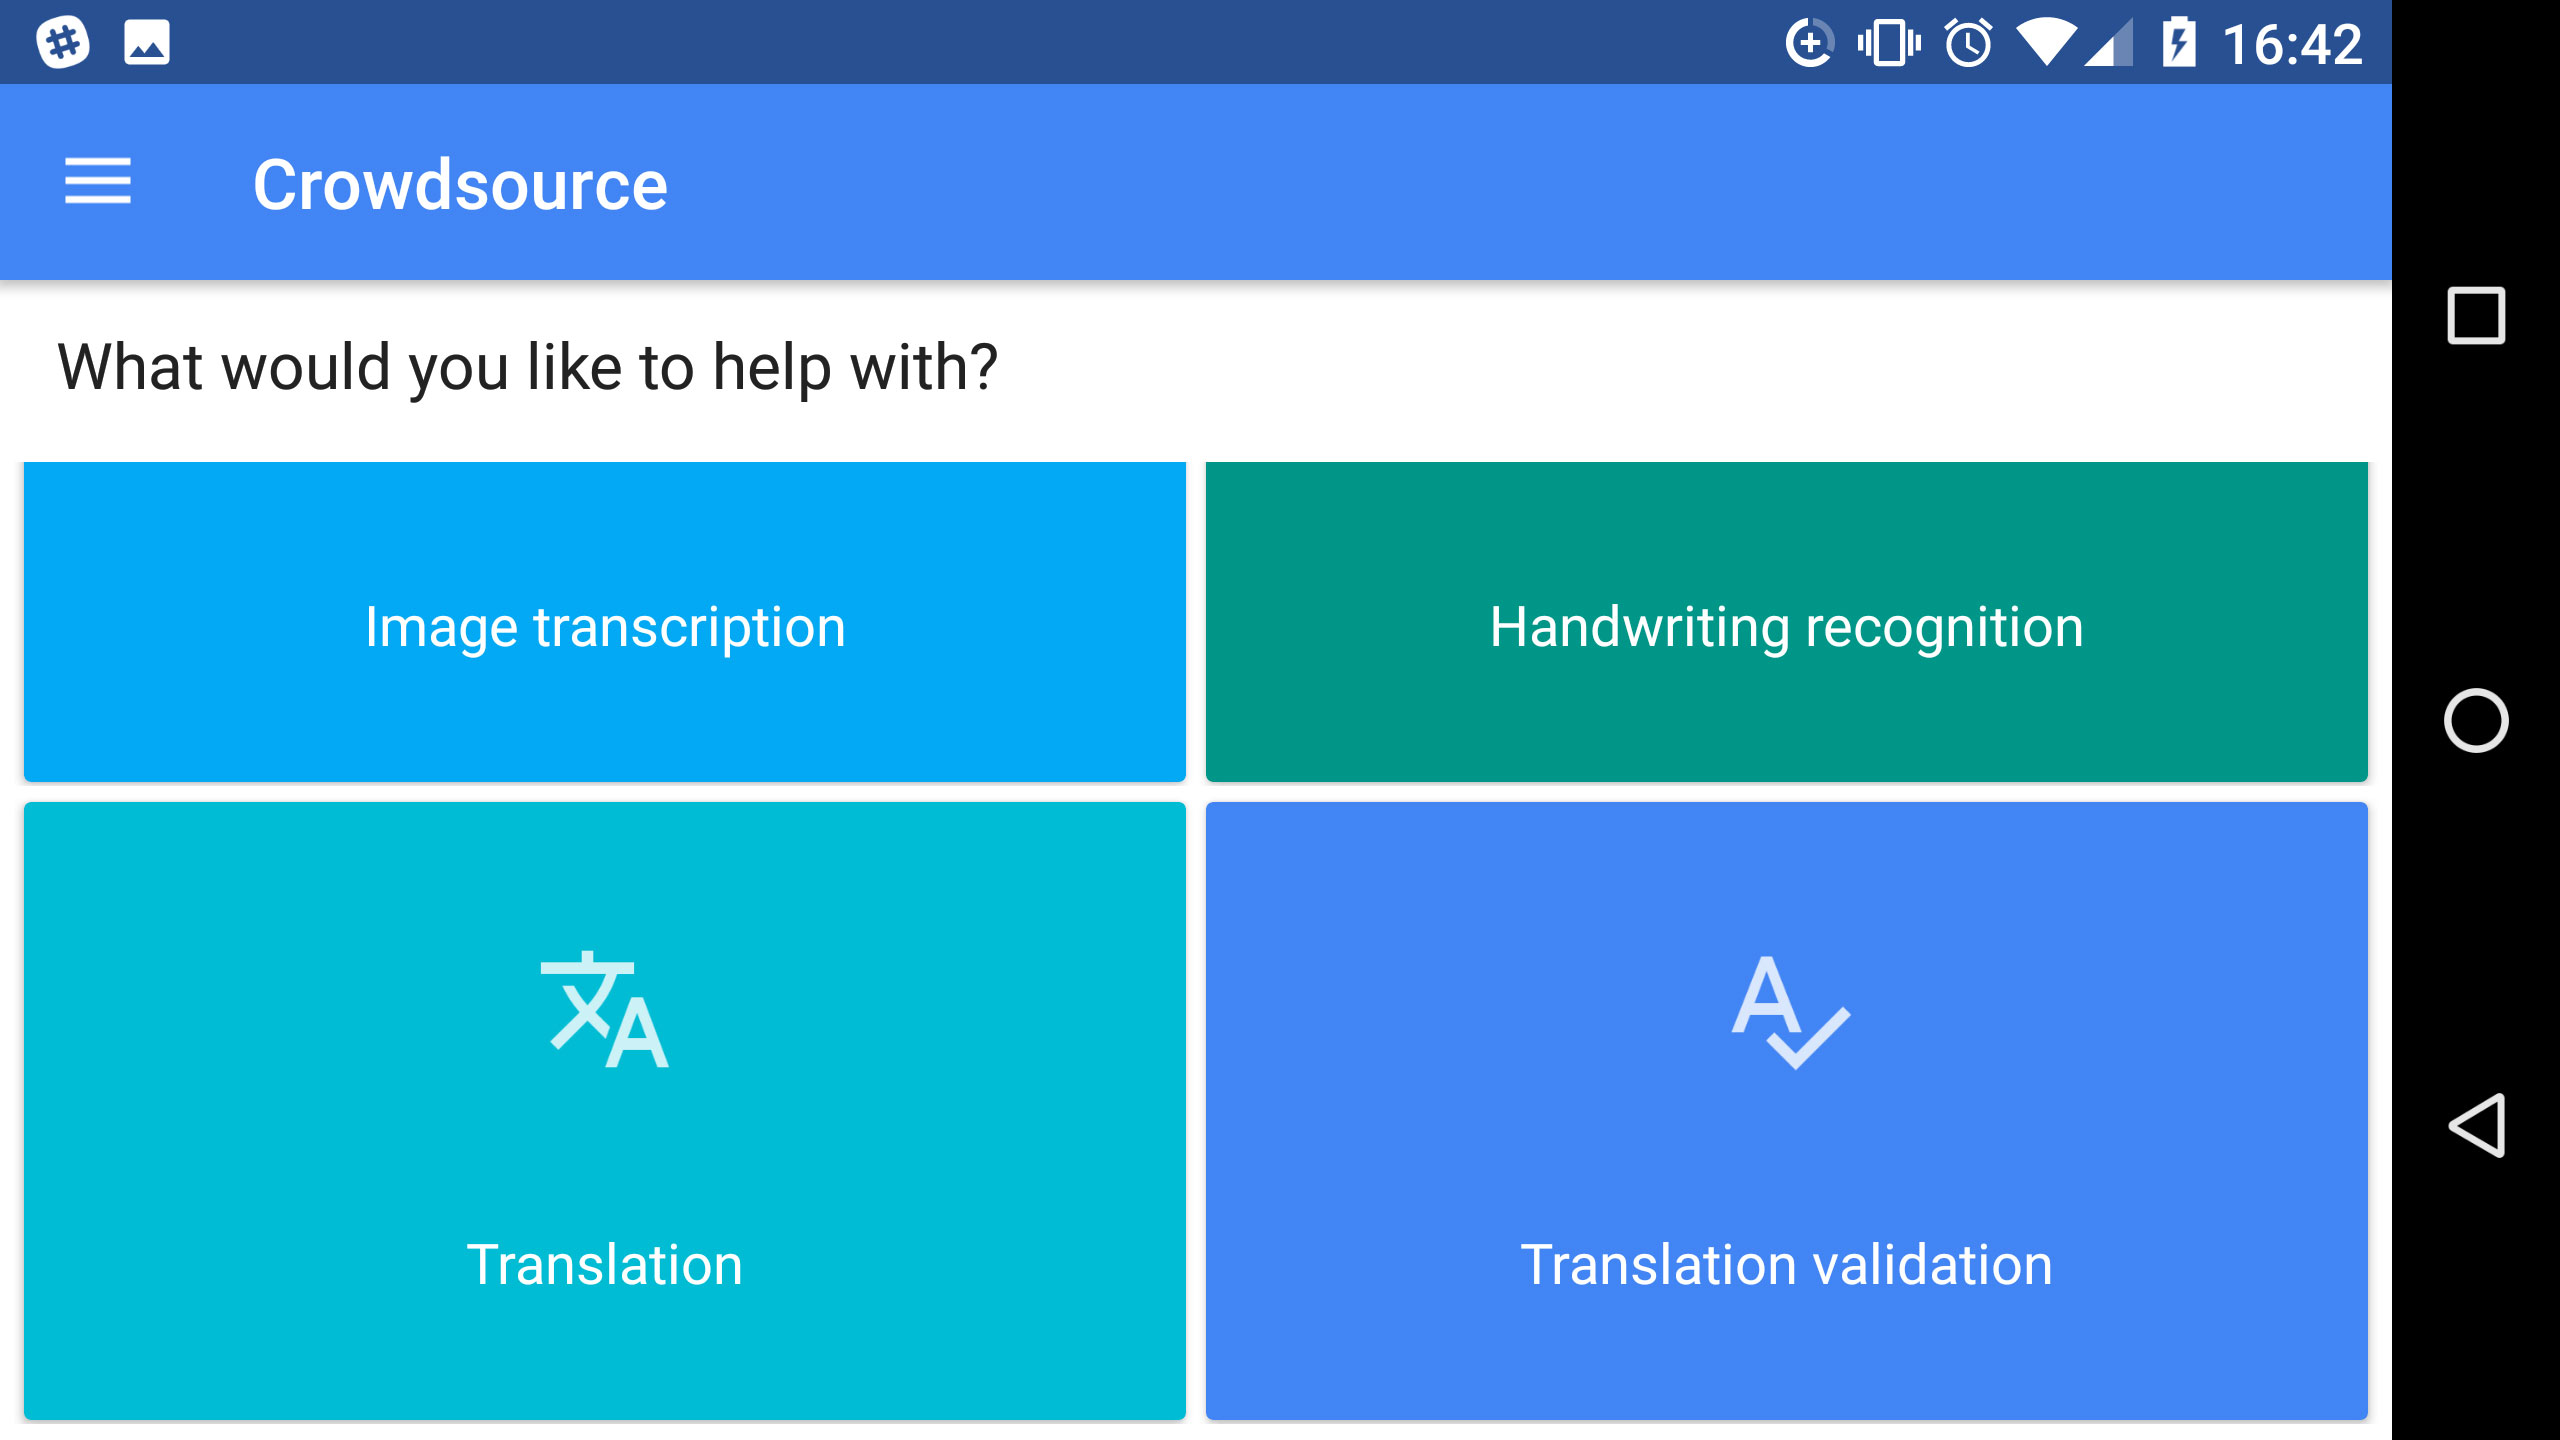 Google Crowdsource lets you help the company with language translation, handwriting recognition and map translation accuracy.